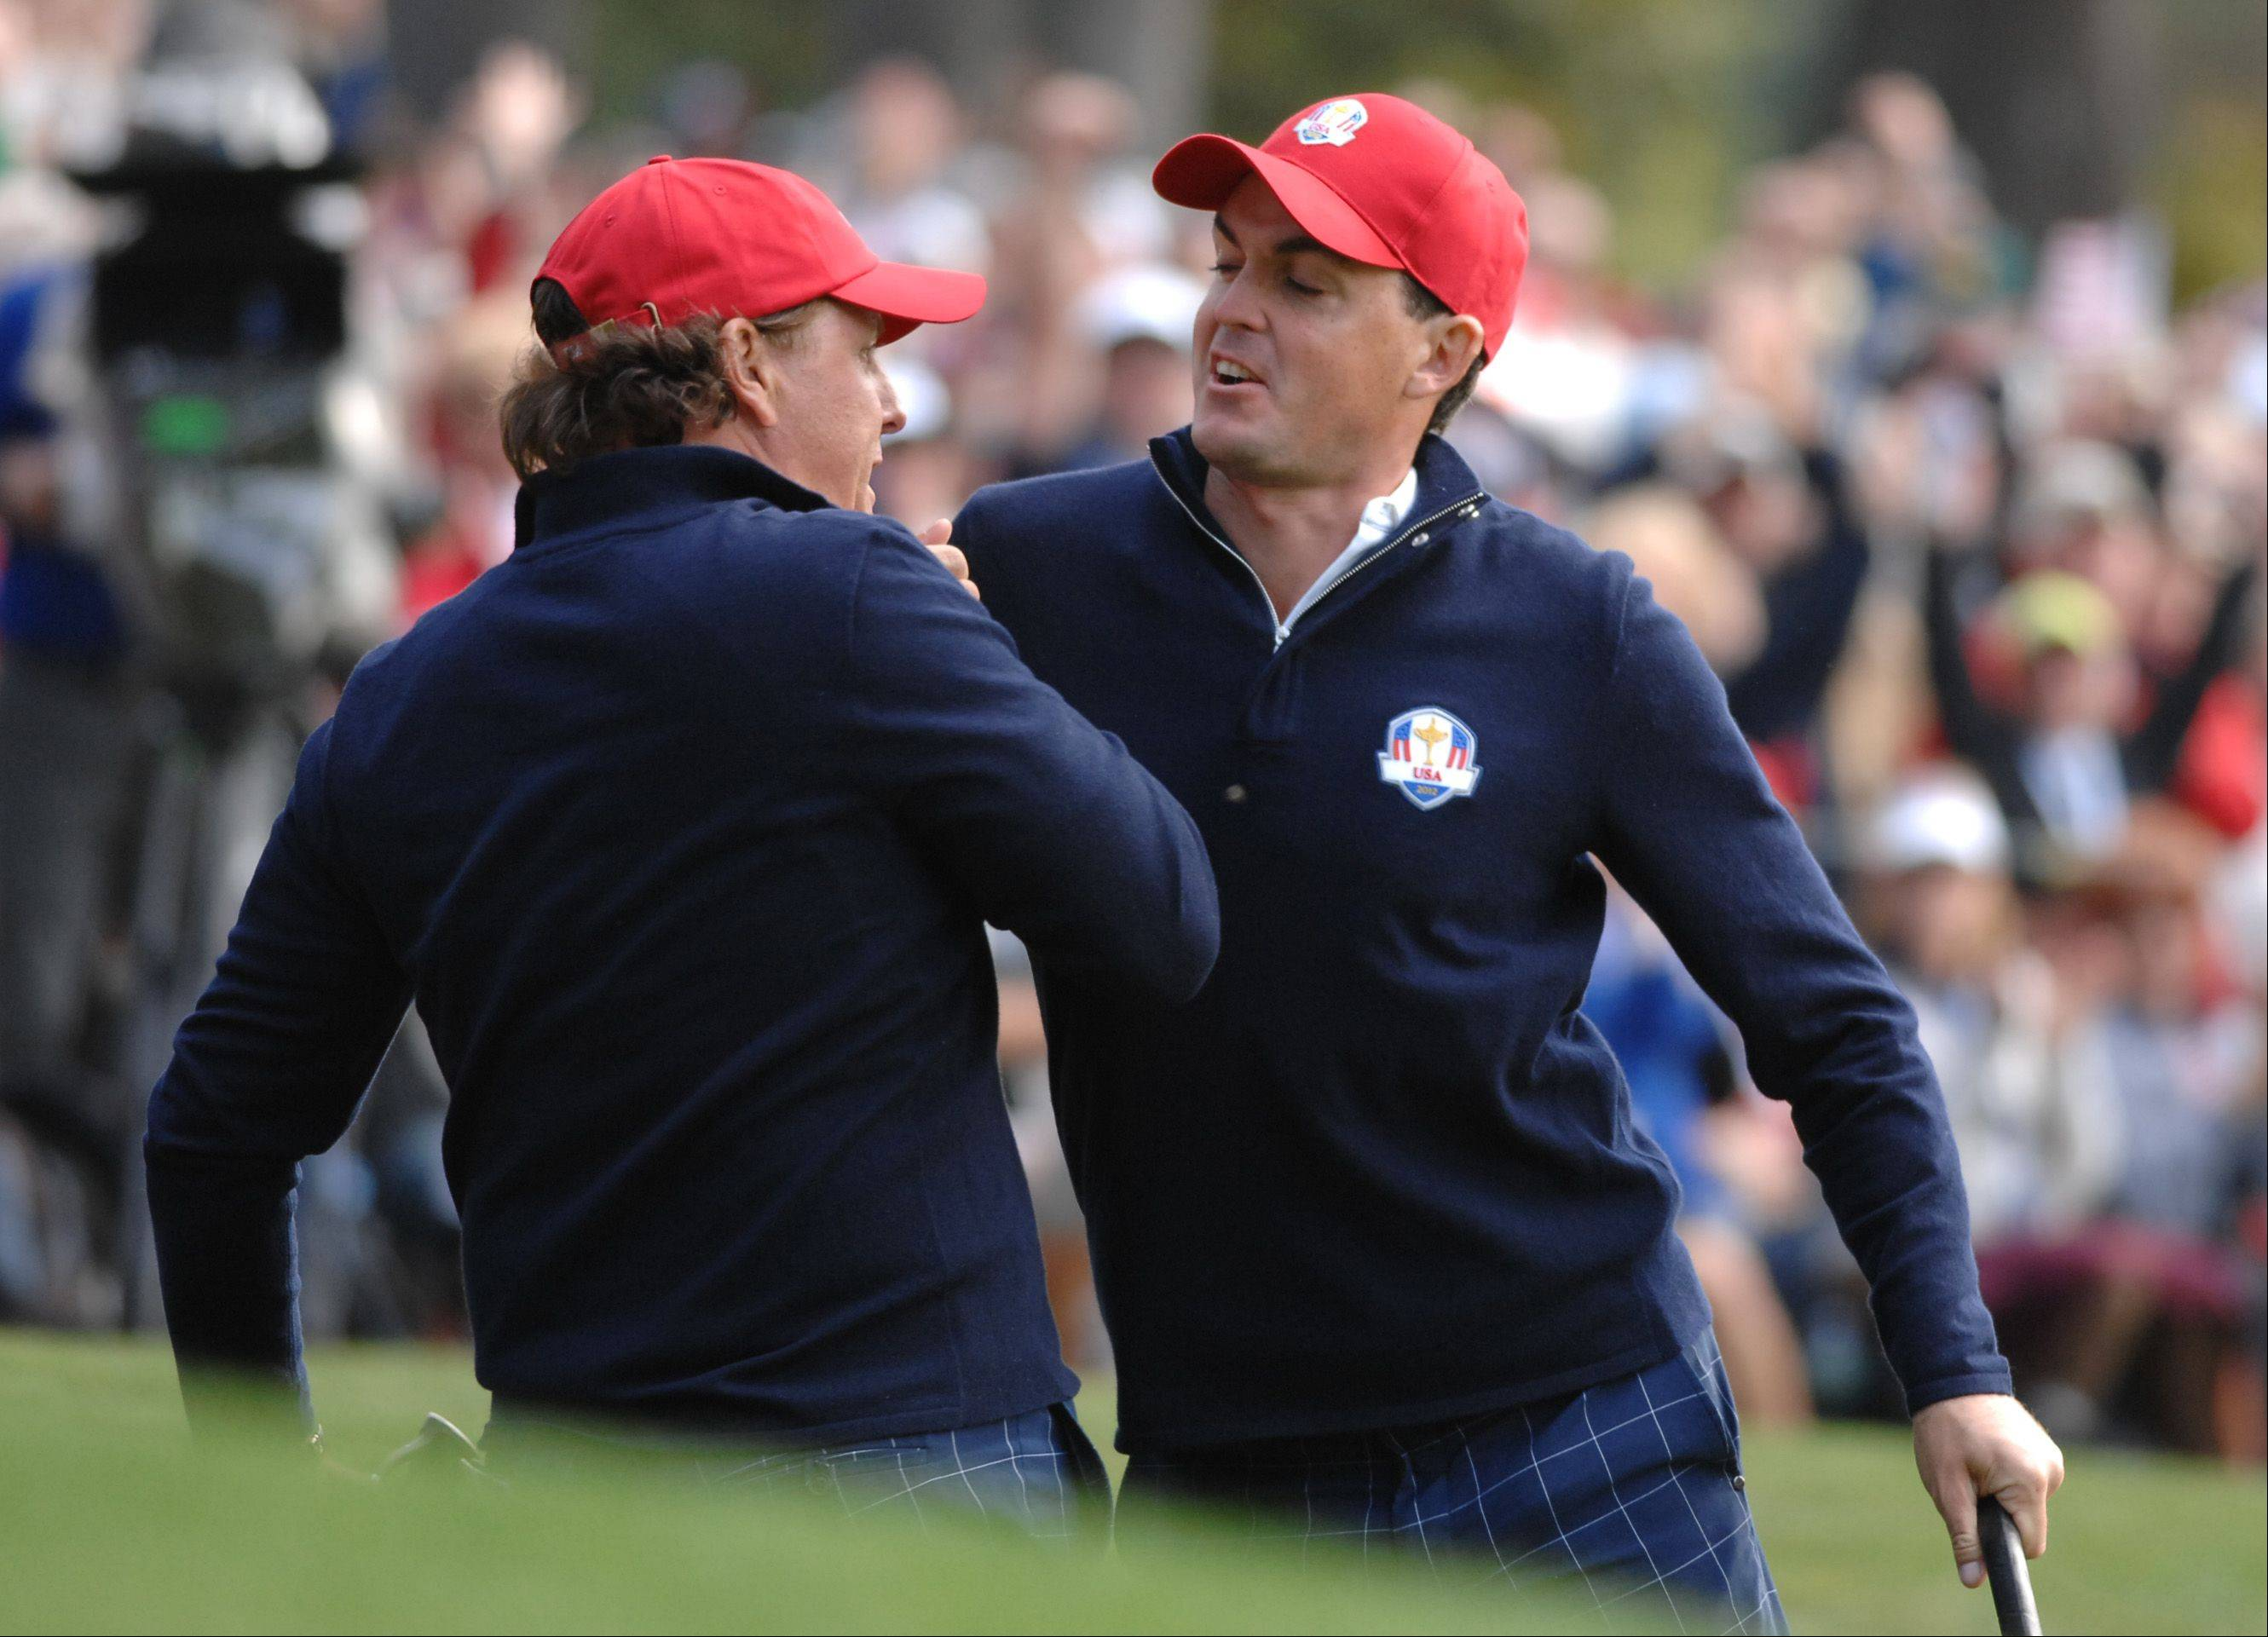 Teammates Phil Mickelson and Keegan Bradley get revved up after Mickelson made a birdie putt on 13.